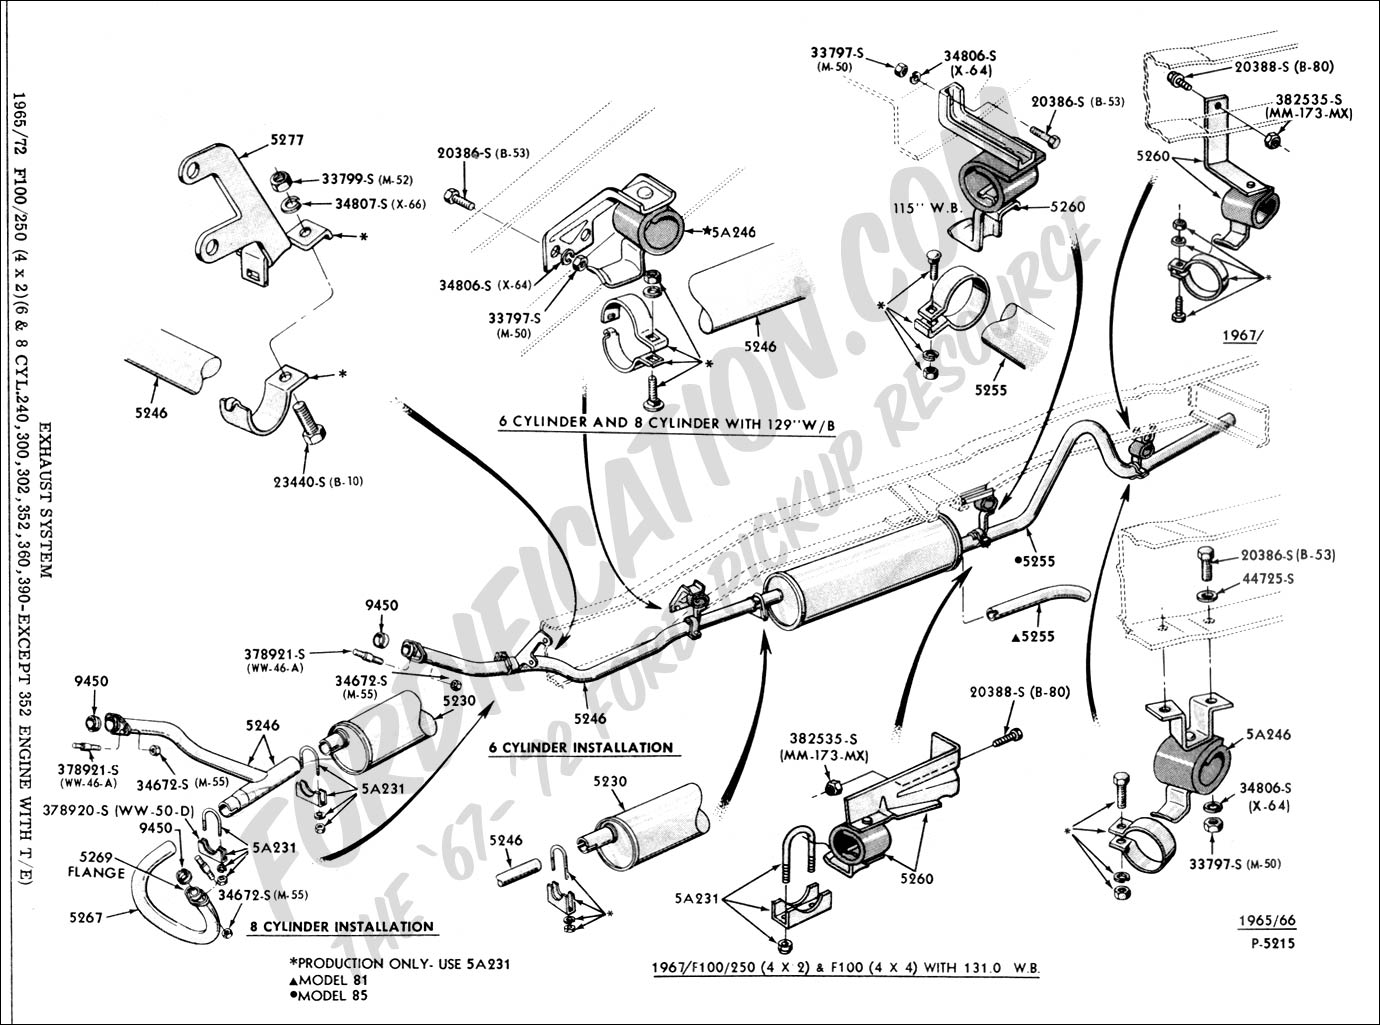 Dodge Crank Sensor Location further 07 Infiniti G35 Wiring Diagram furthermore Fuel Pump Wiring Diagram For 1998 Chevy Silverado 1500 together with 1990 F150 Ford 6 Cylinder Diagram additionally 2man7 Tryinh Install New Radio 2006 Ram 3500. on dodge intrepid tail light wiring diagram